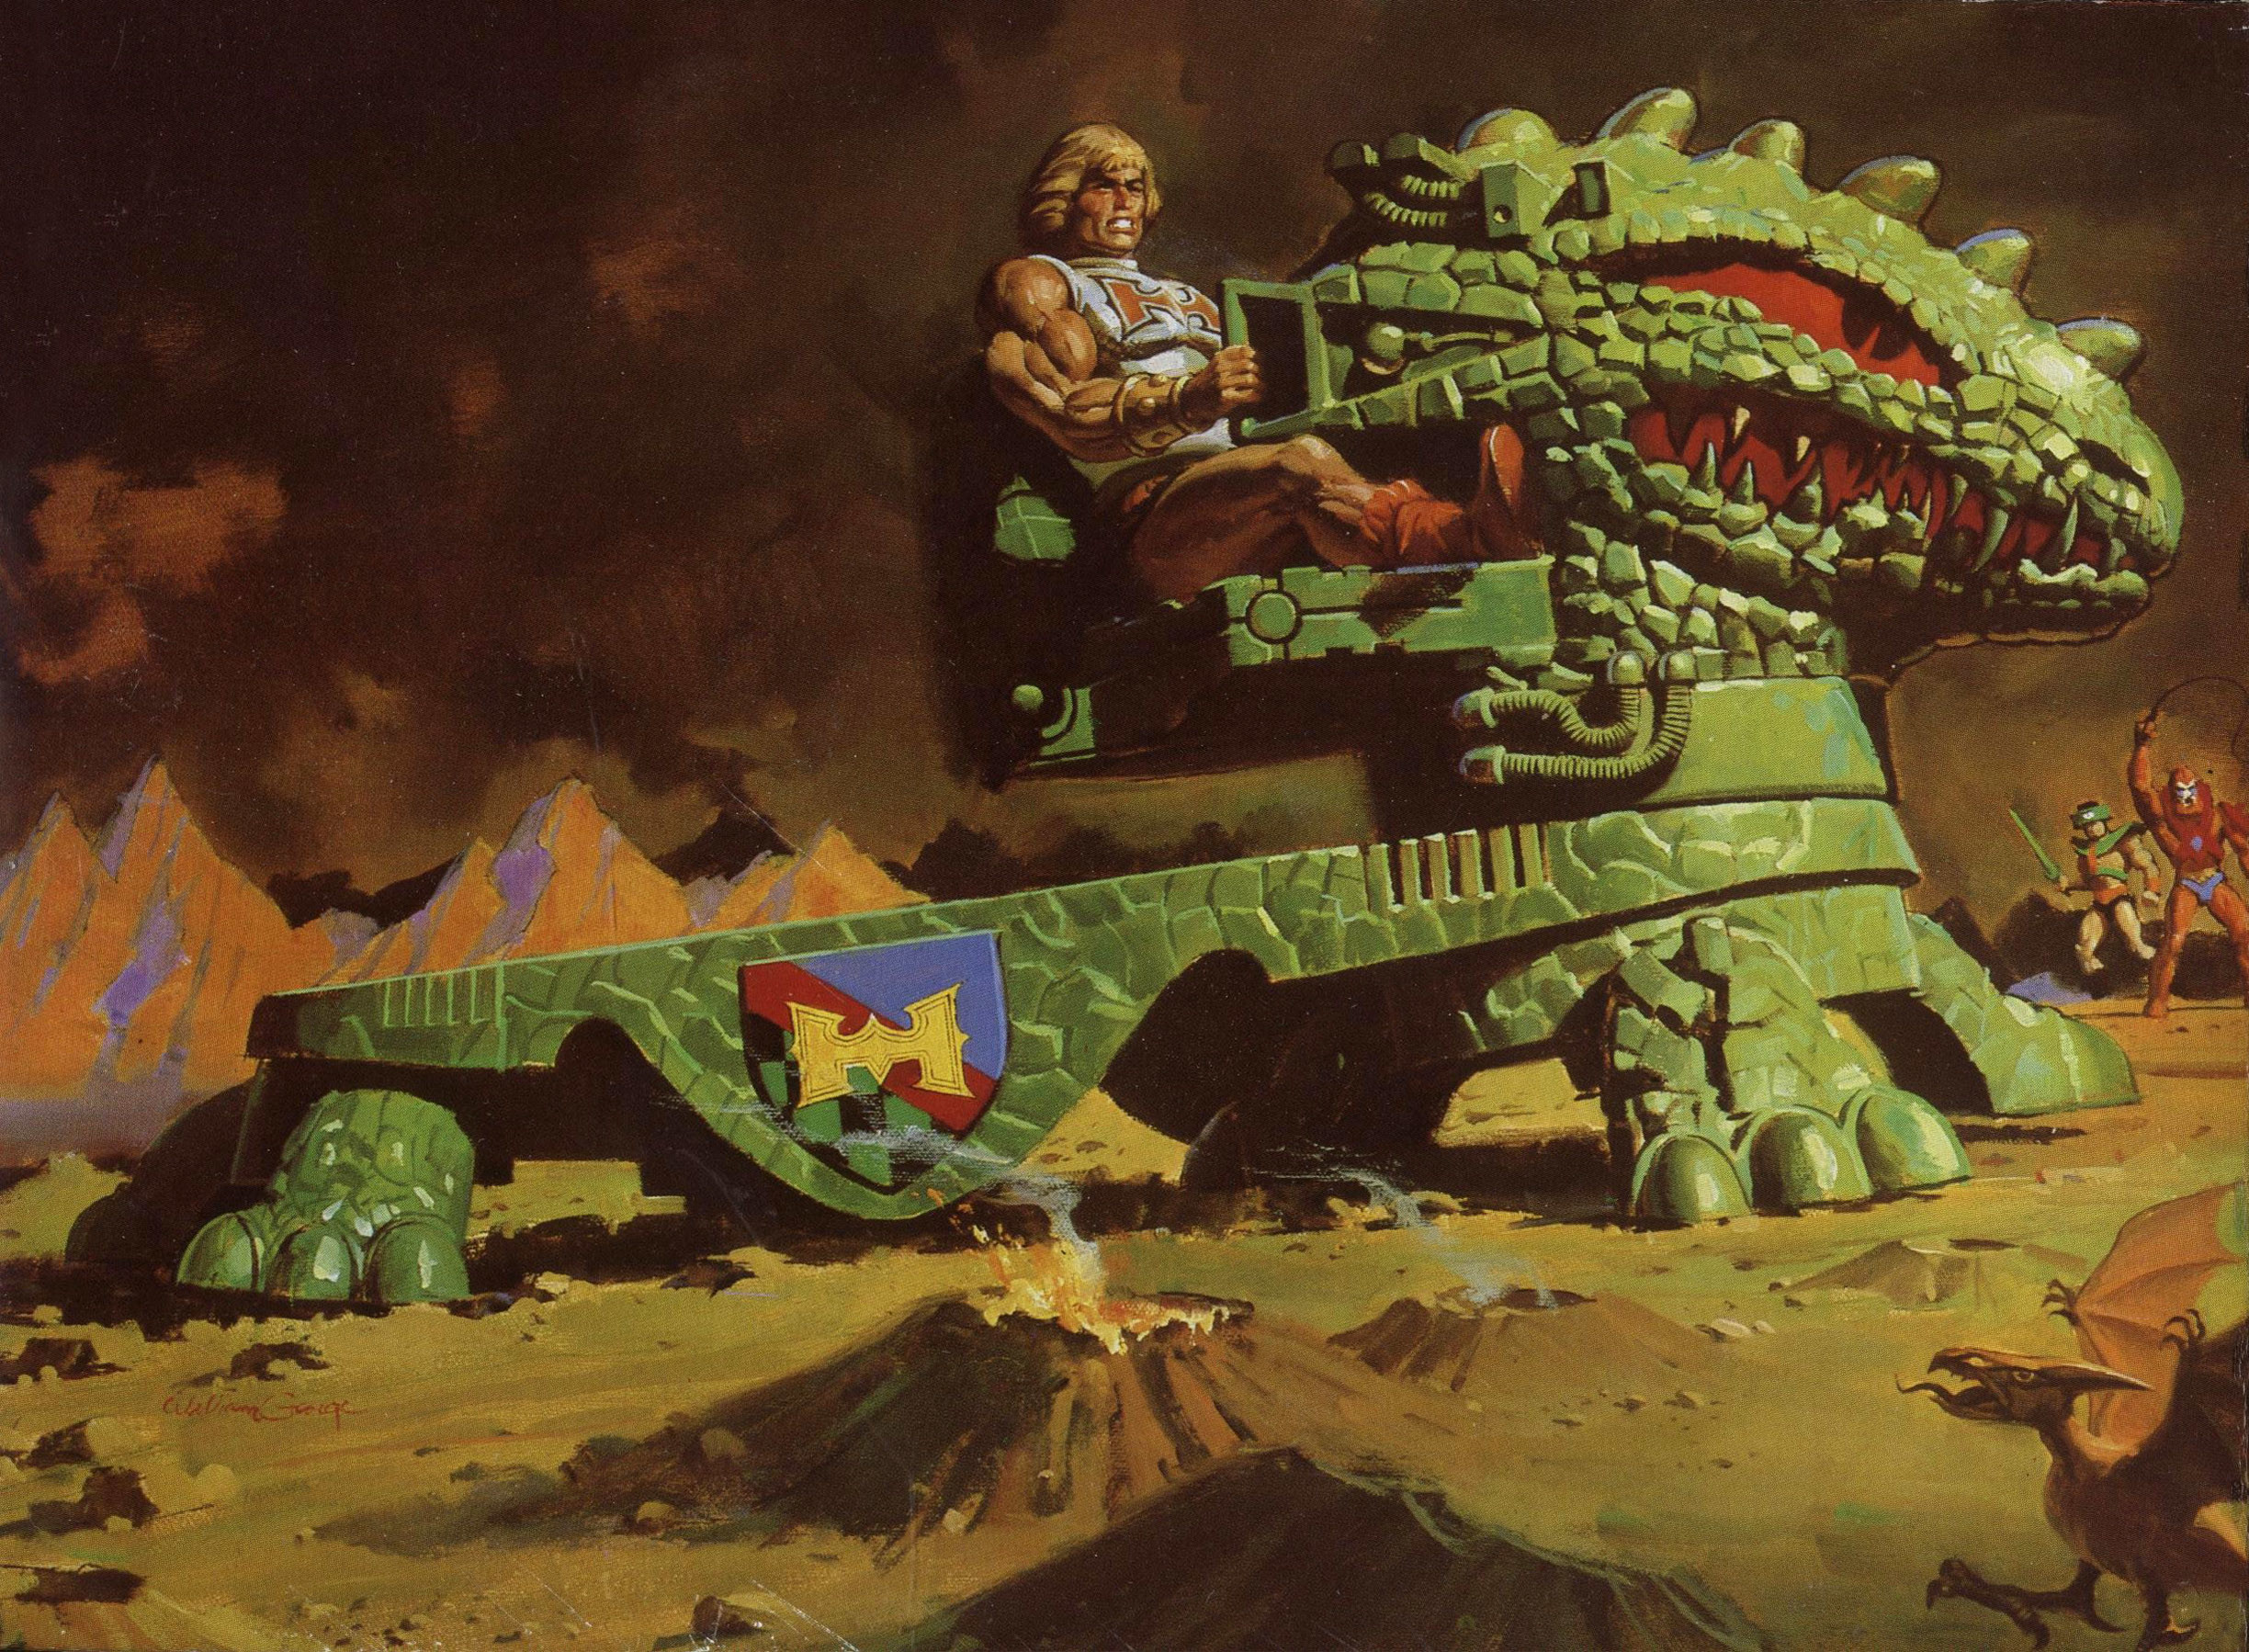 Res: 2448x1798, Fernsehserien - He-Man And The Masters Of The Universe Wallpaper